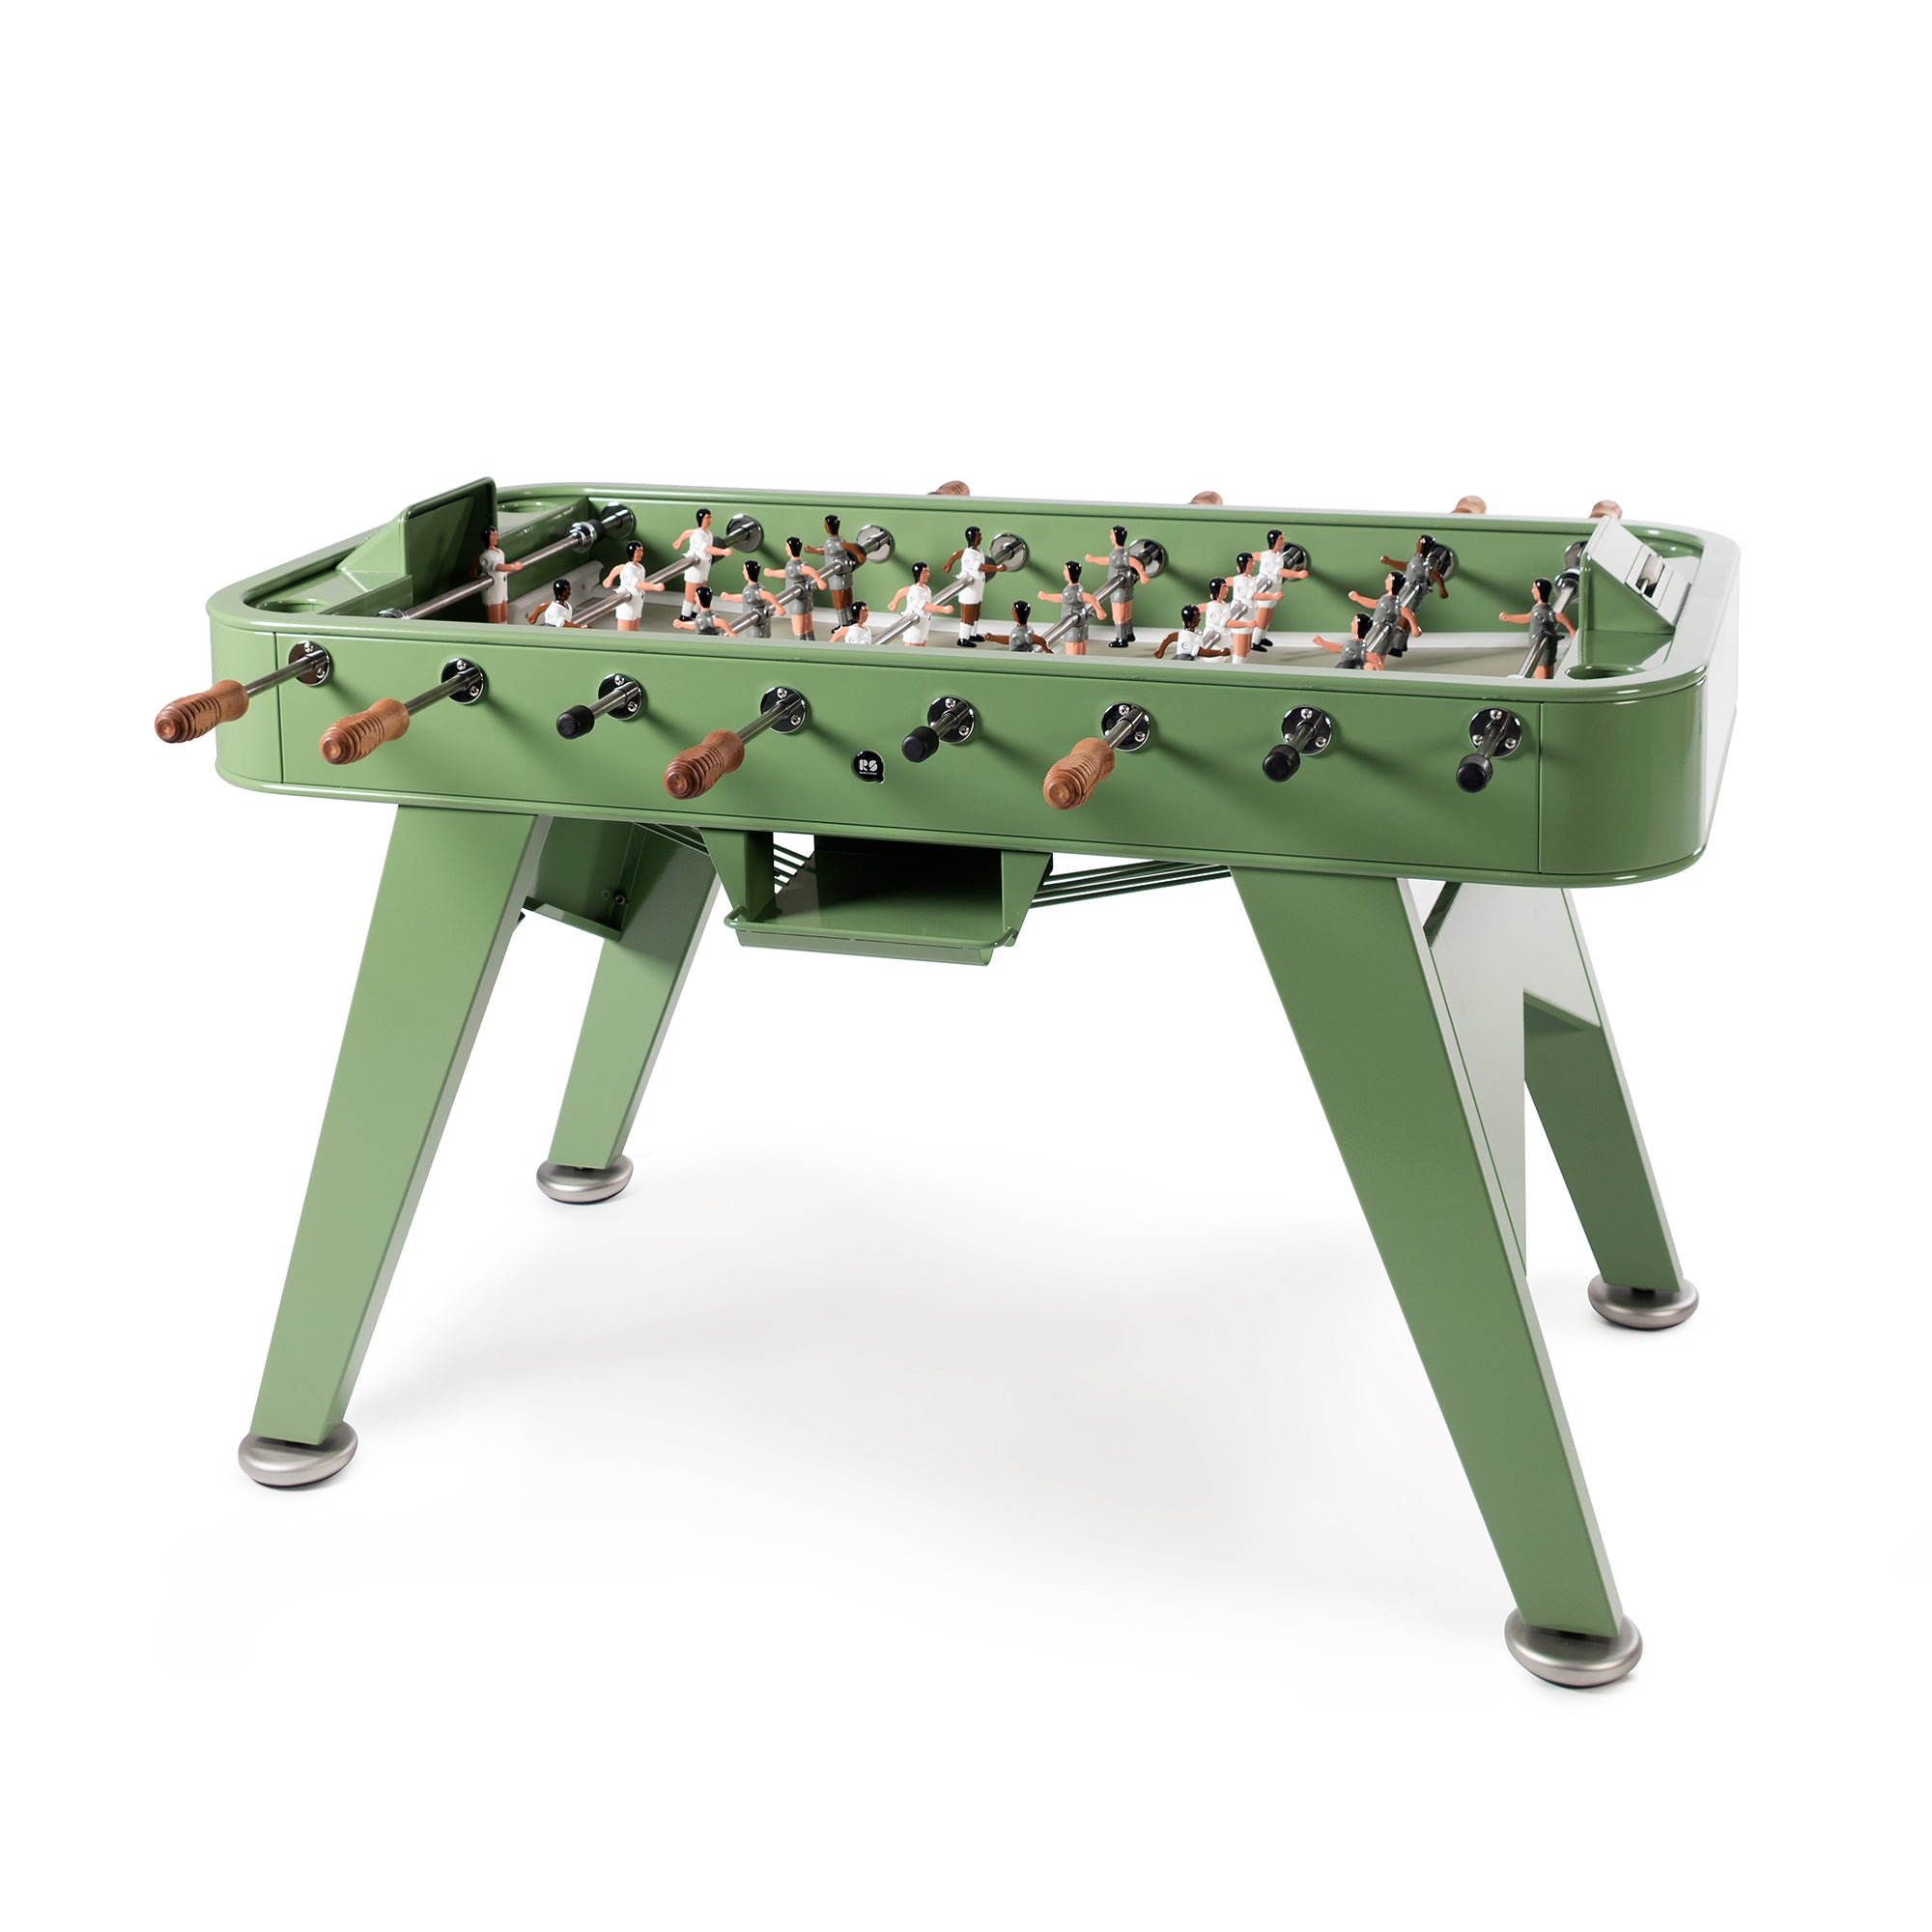 RS2 Foosball Table Outdoor: Green